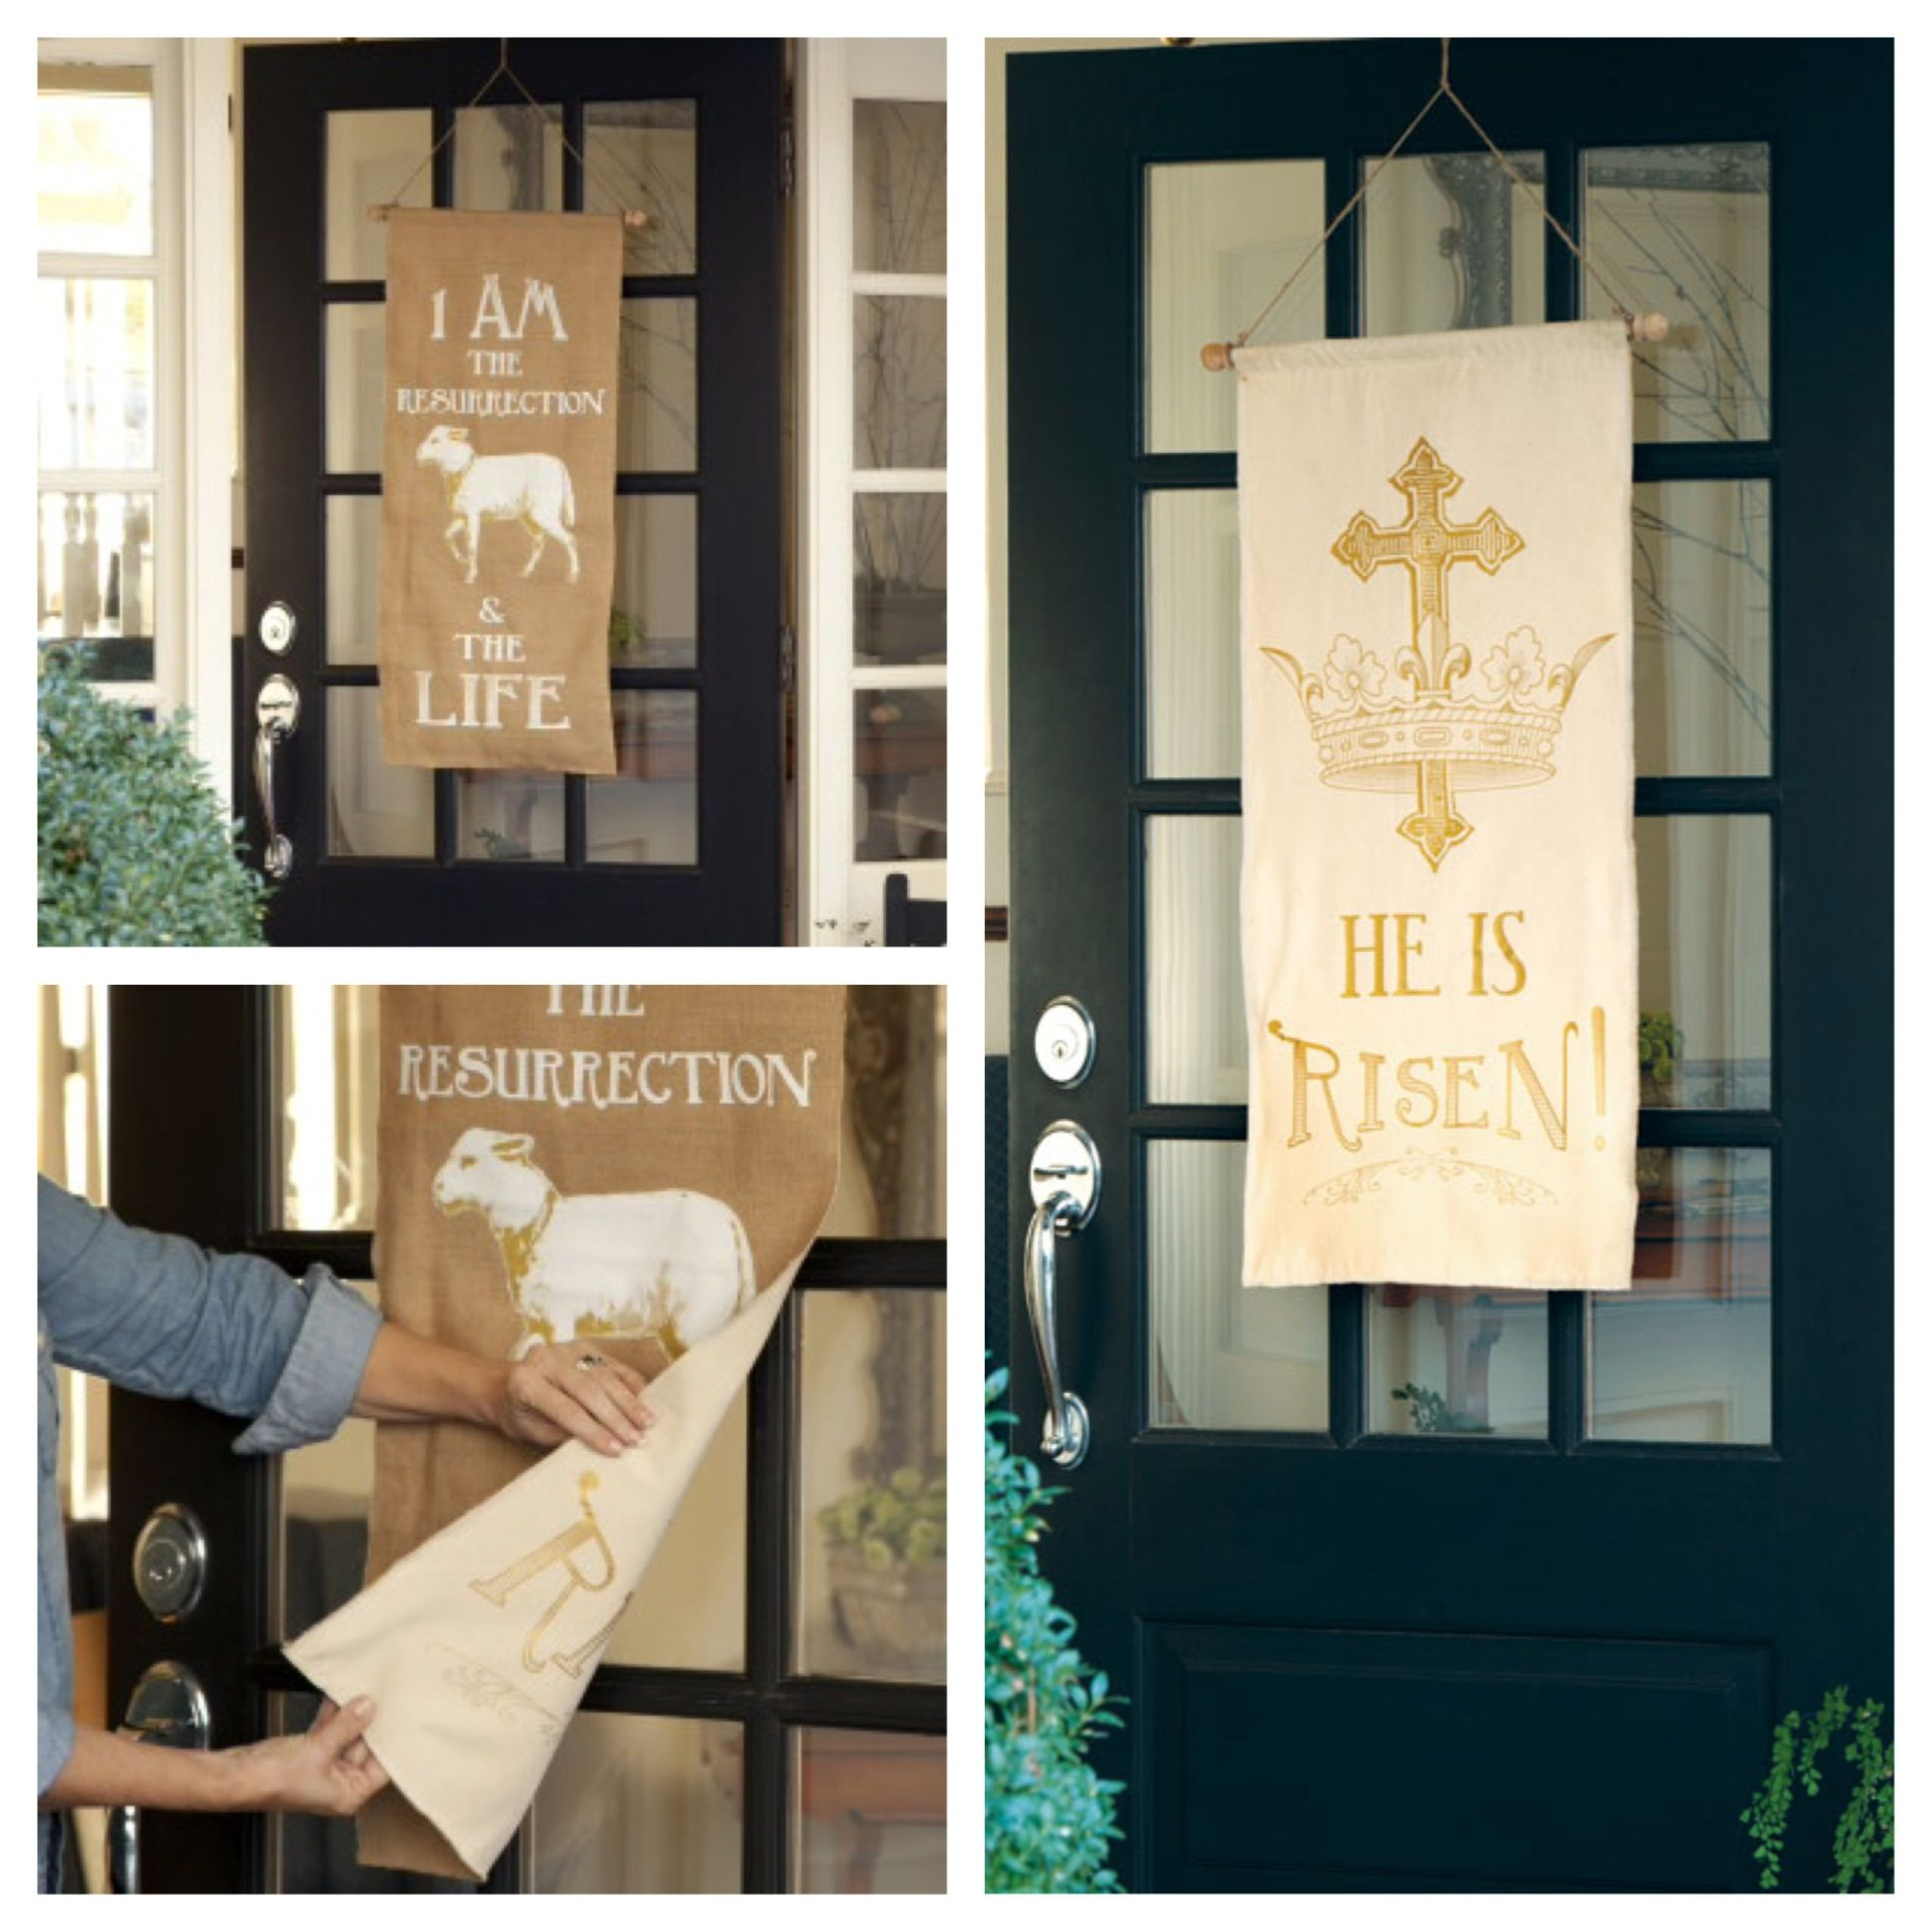 HE IS RISEN EASTER BANNER BY EVER THINE HOME NEW IN BOX DOUBLE SIDED BANNER